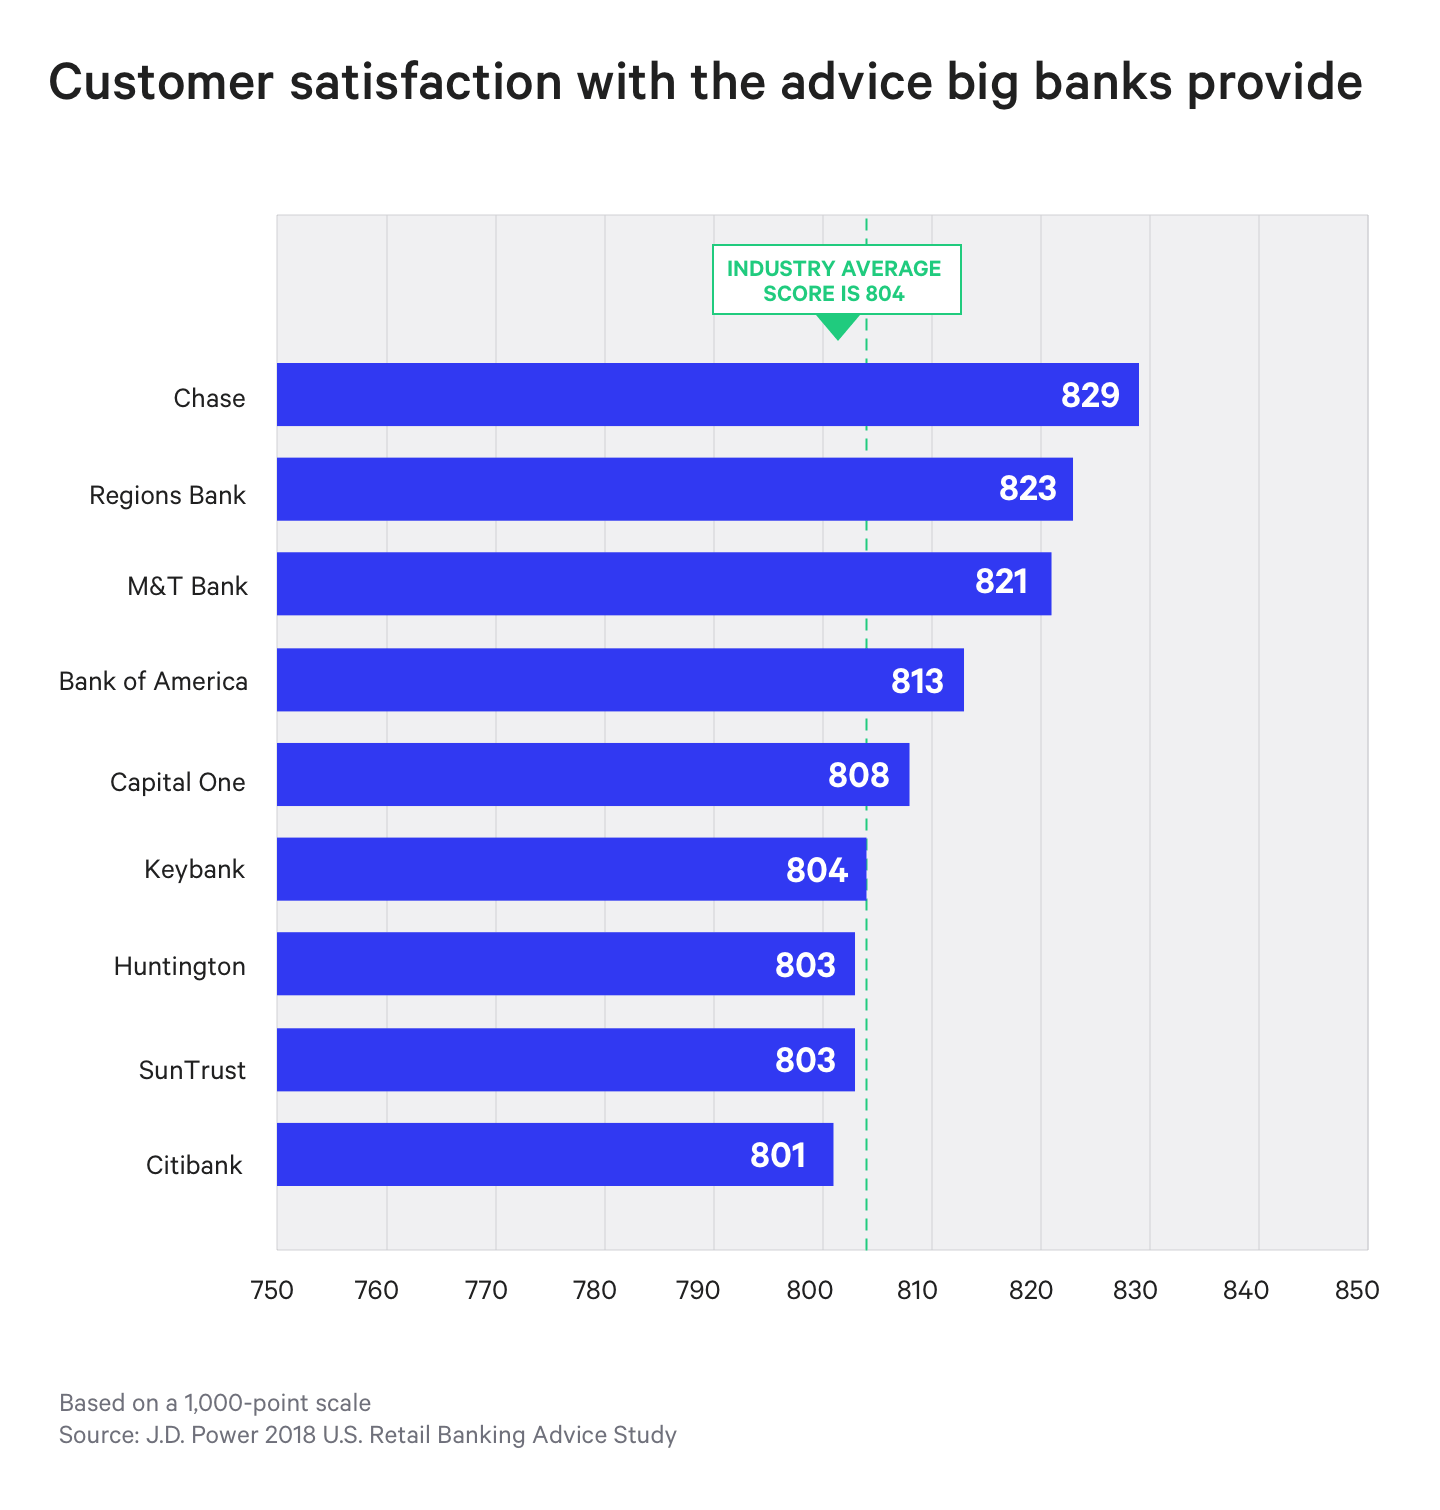 J.D. Power 2018 U.S. Retail Banking Advice Study graph